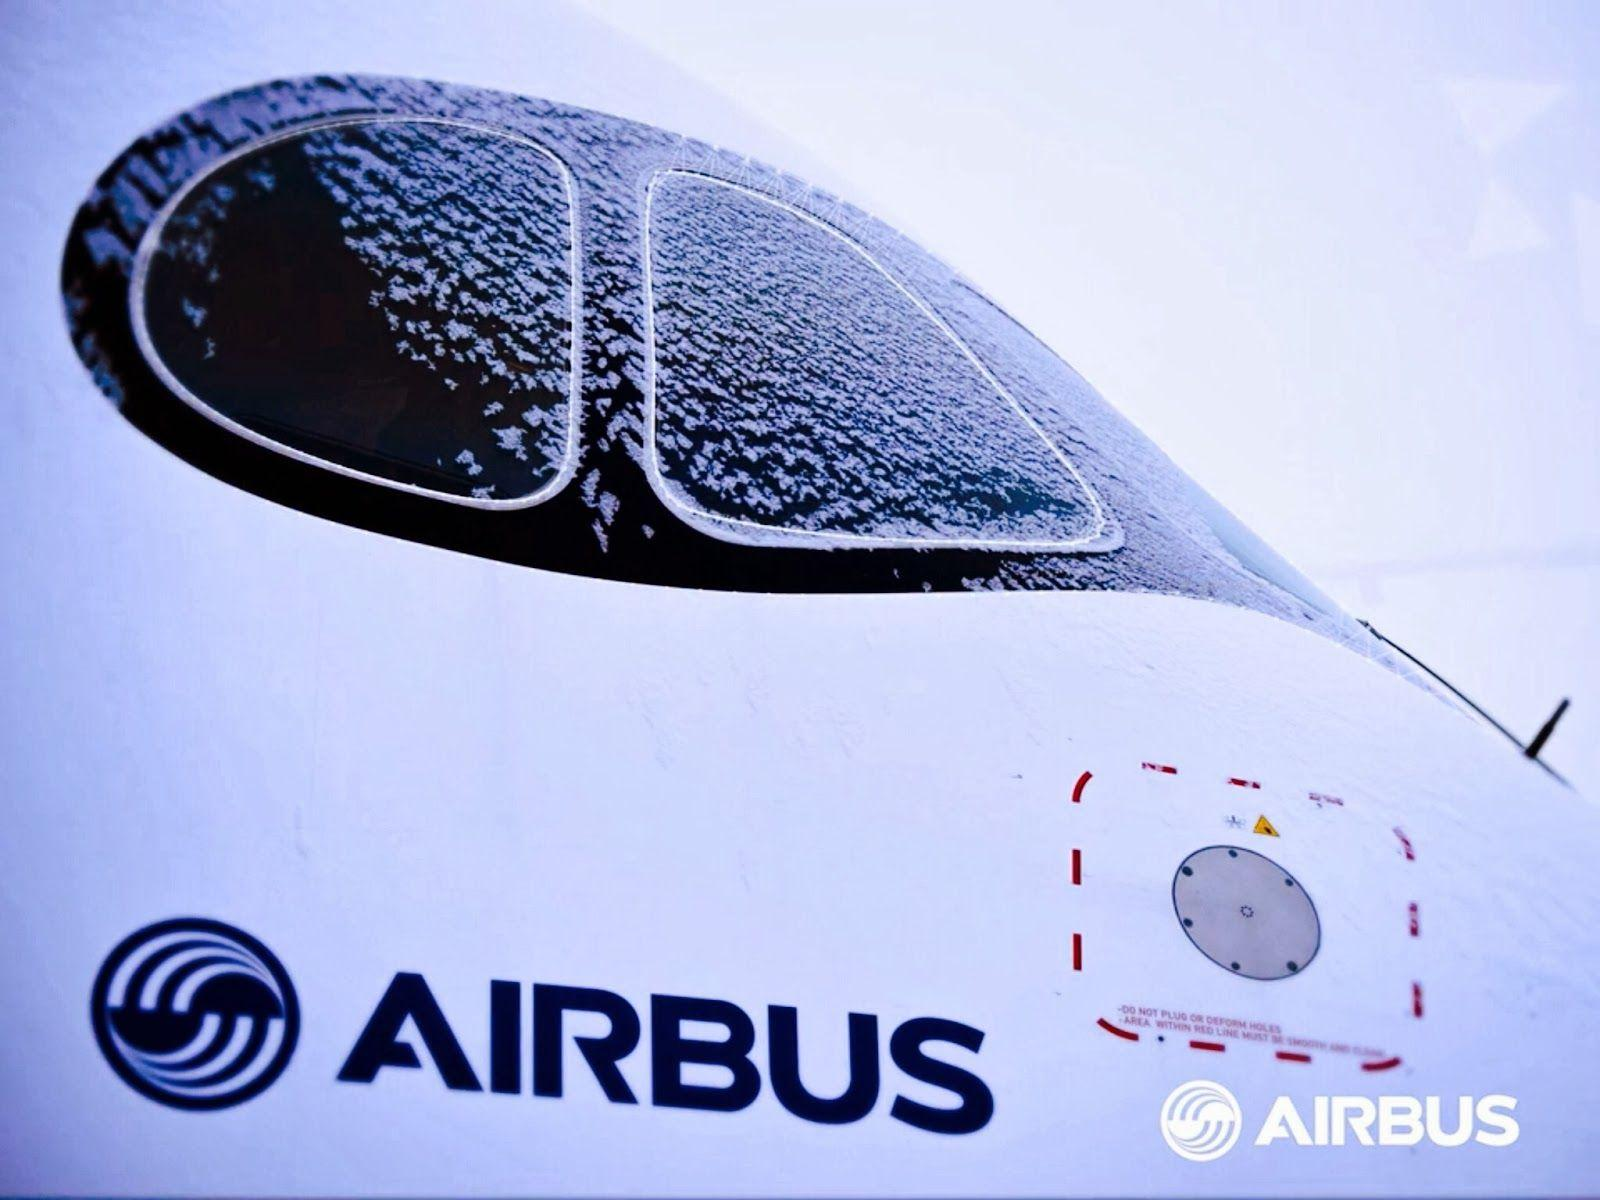 Airbus A350 XWB Wallpapers - Wallpaper Cave